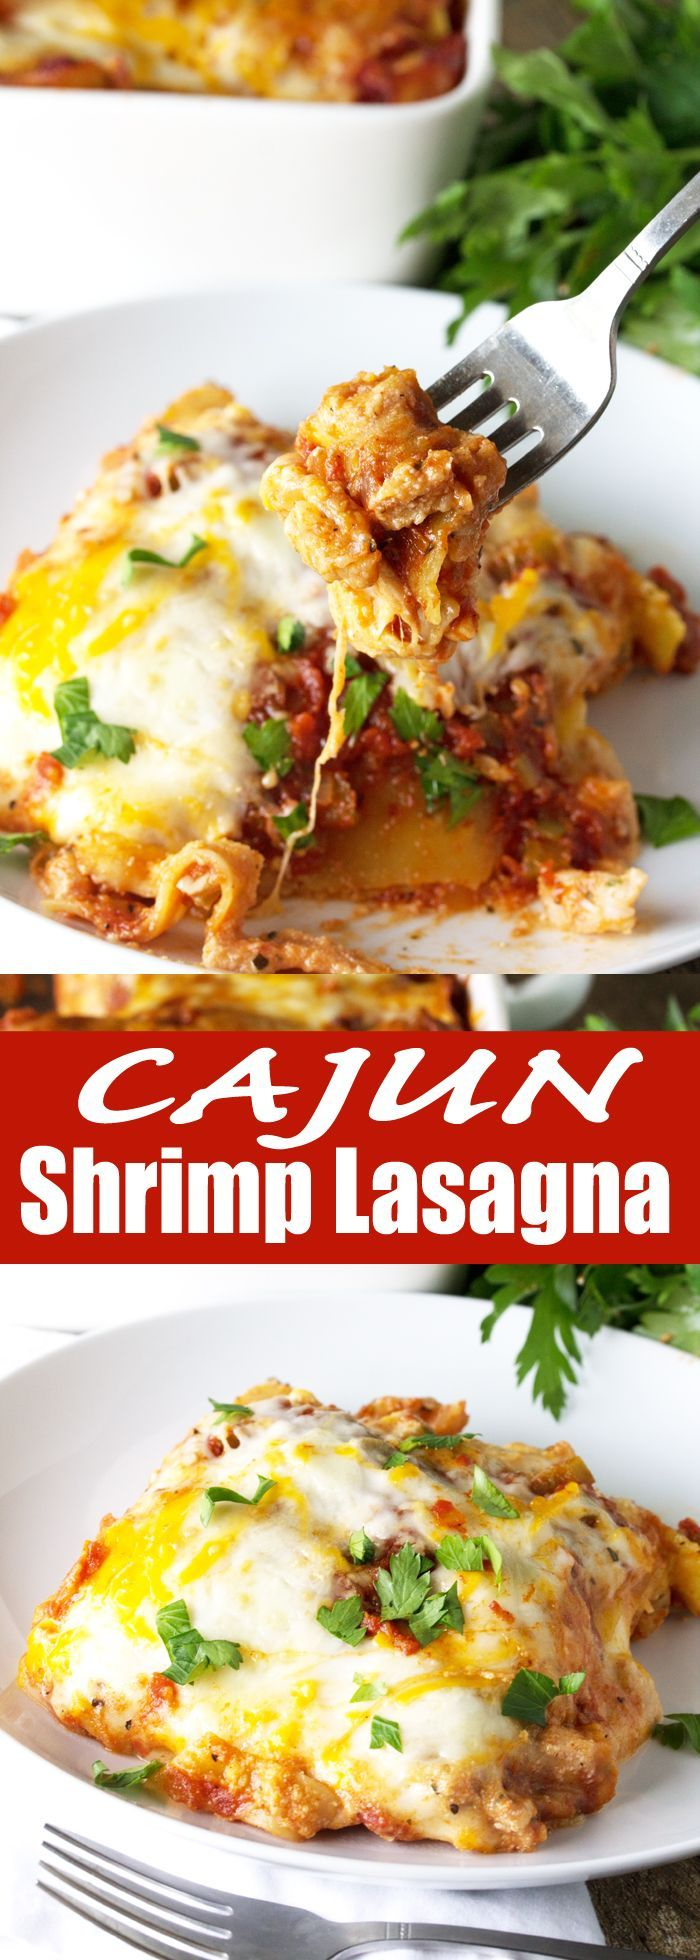 Spice things up with this Cajun Shrimp Lasagna! You'll be blown away with the flavor in this spicy Southern seafood version of lasagna.